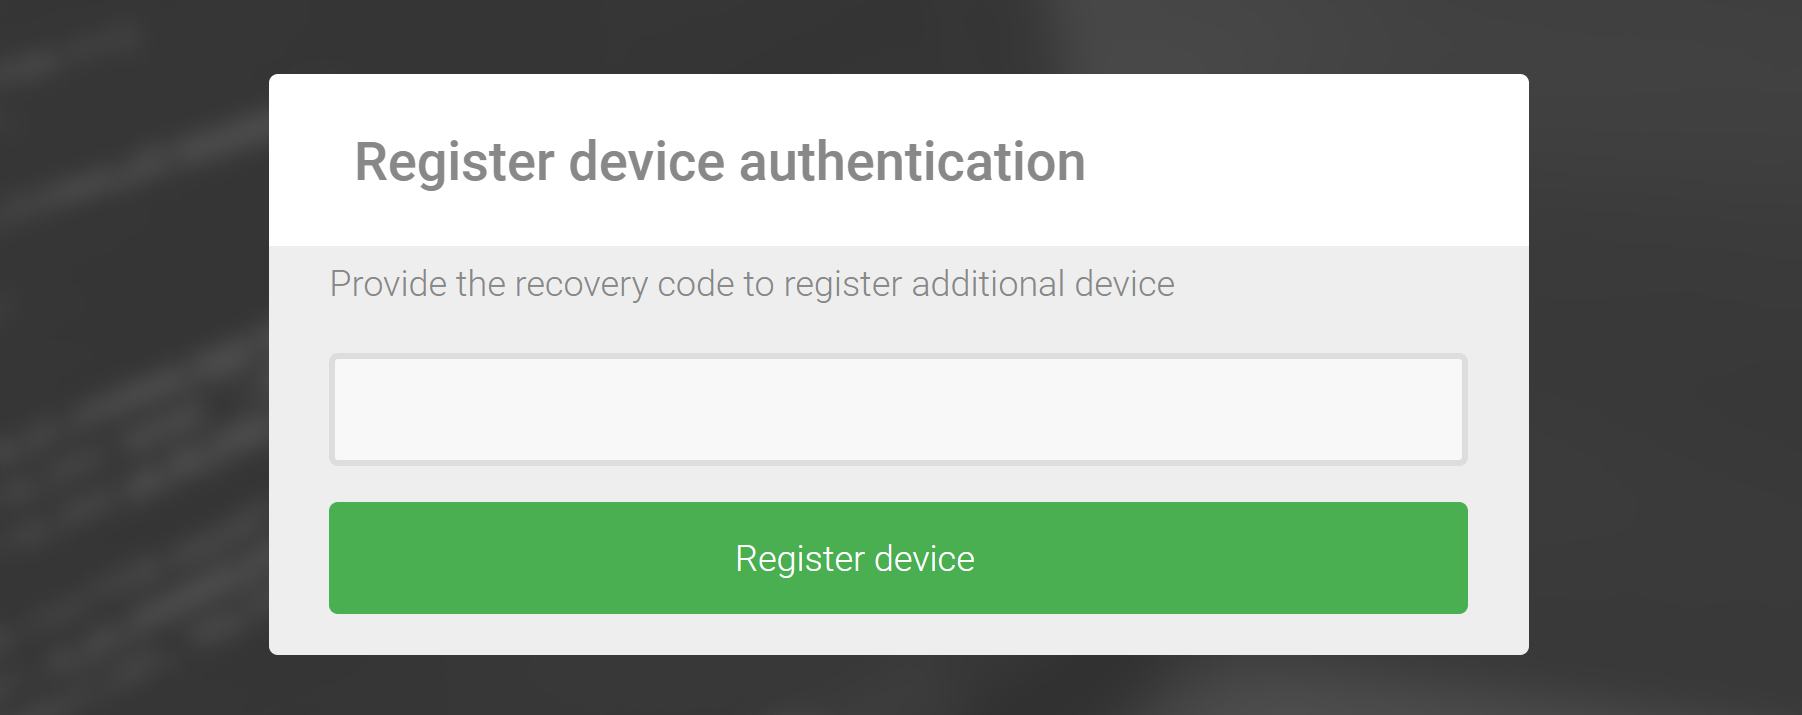 device-authentication-additional-device